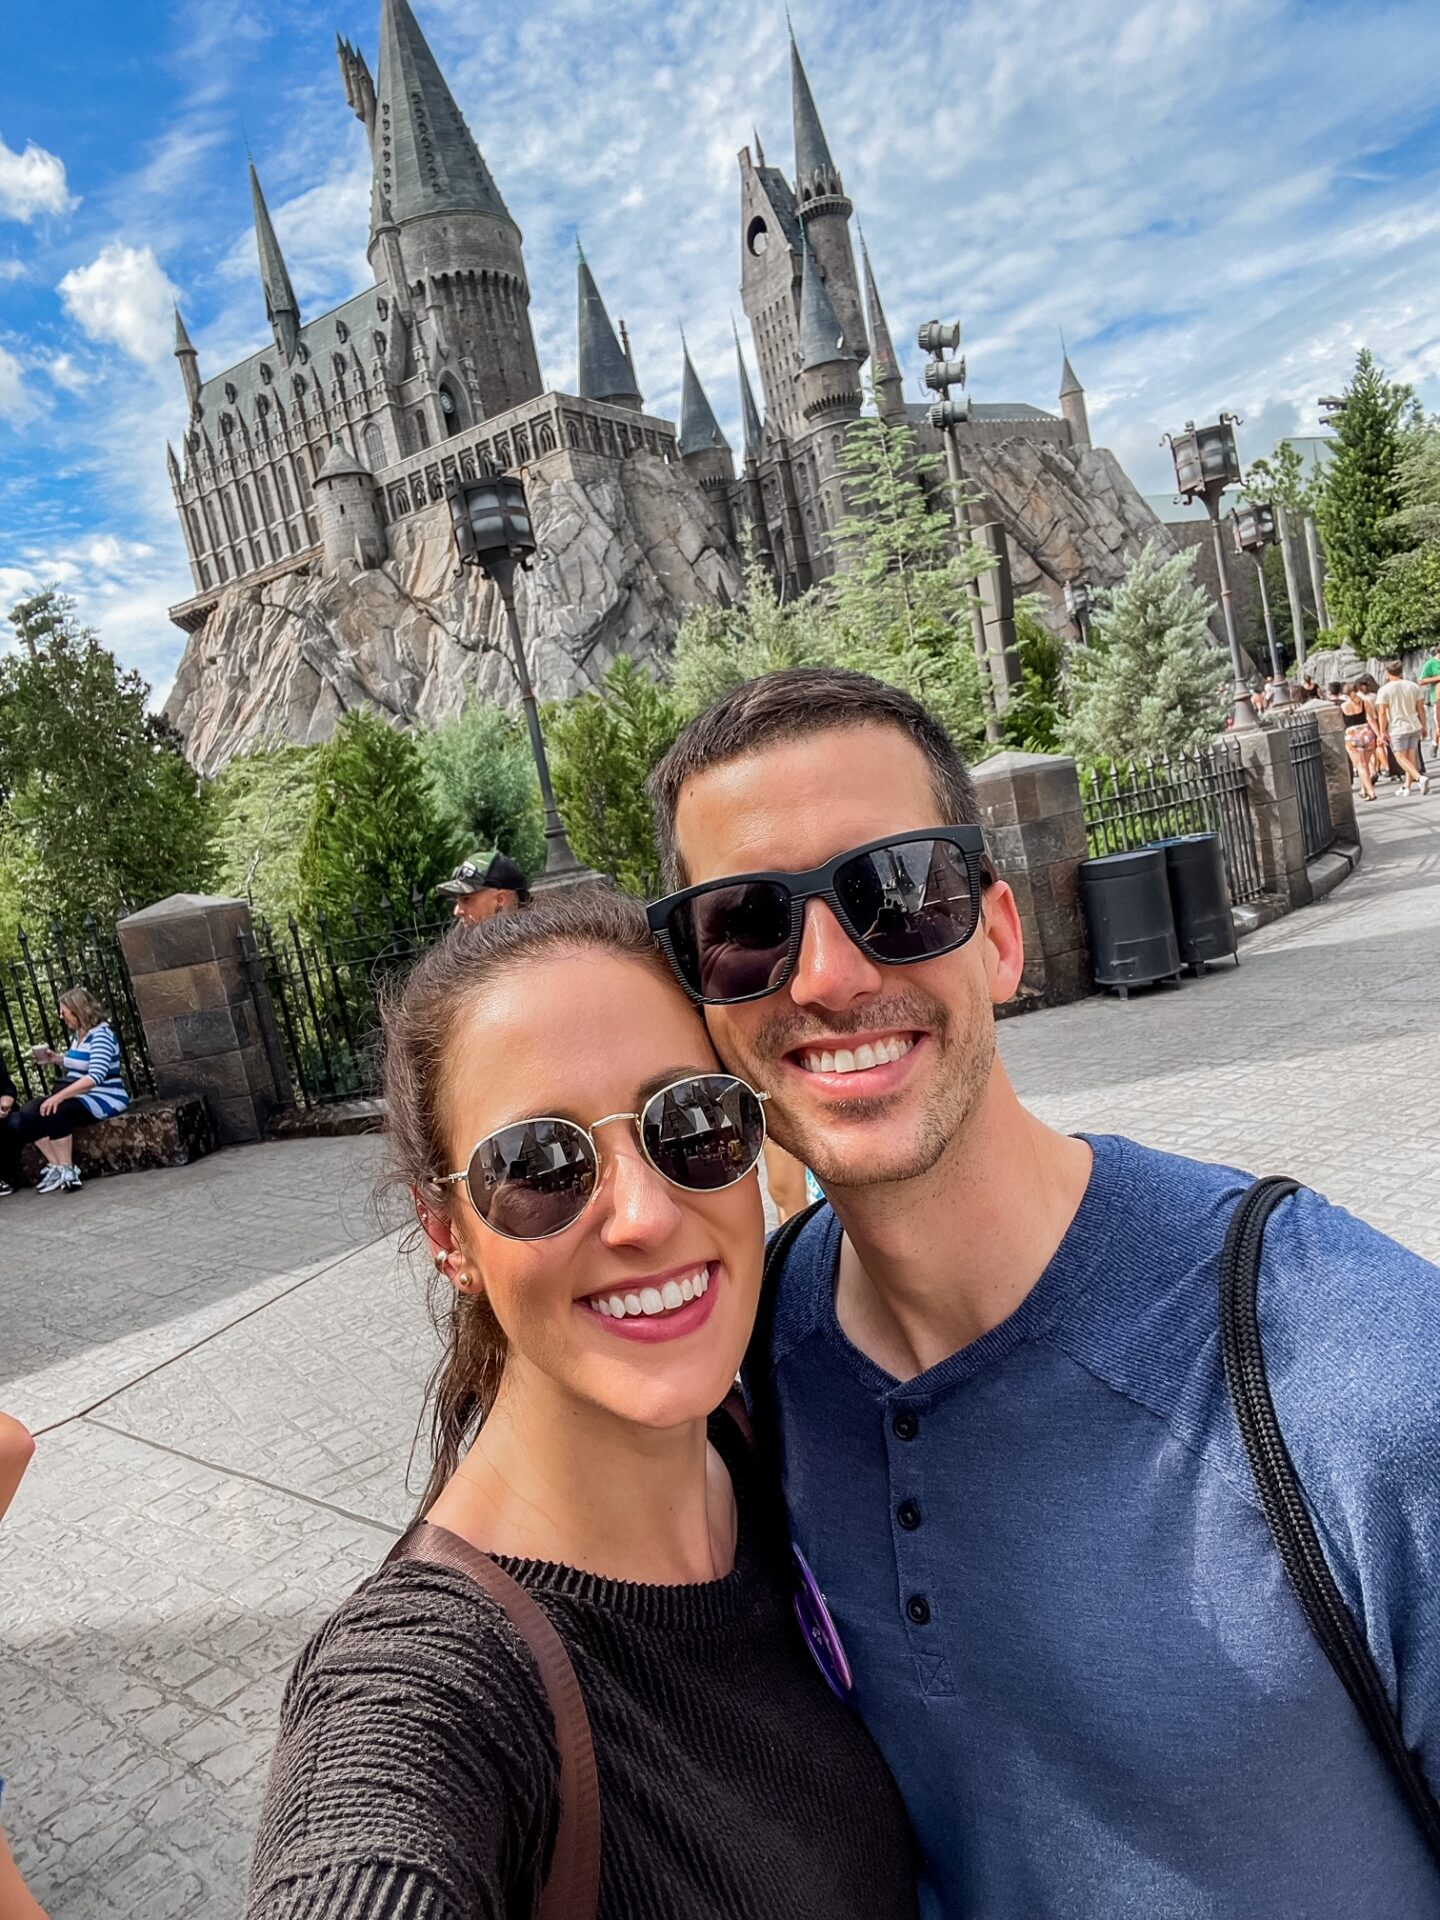 Our Anniversary Trip to Universal Orlando Resort - with things to do at Universal Studios Orlando when it rains, must-see spots at Harry Potter World, + MORE!